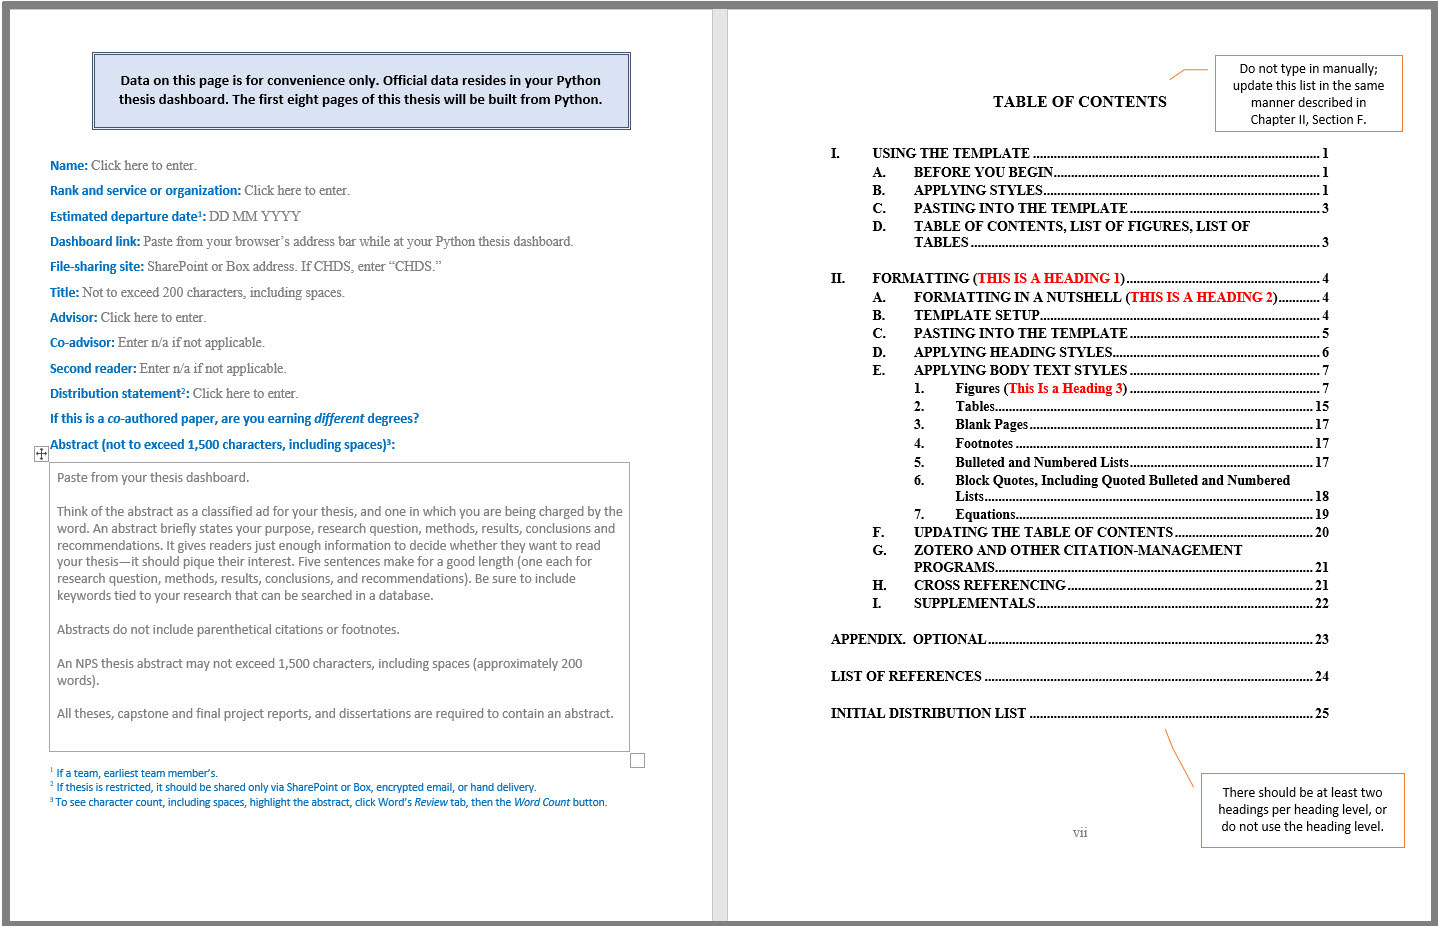 Nps Thesis Templates And Forms Thesis Processing Naval Postgraduate School